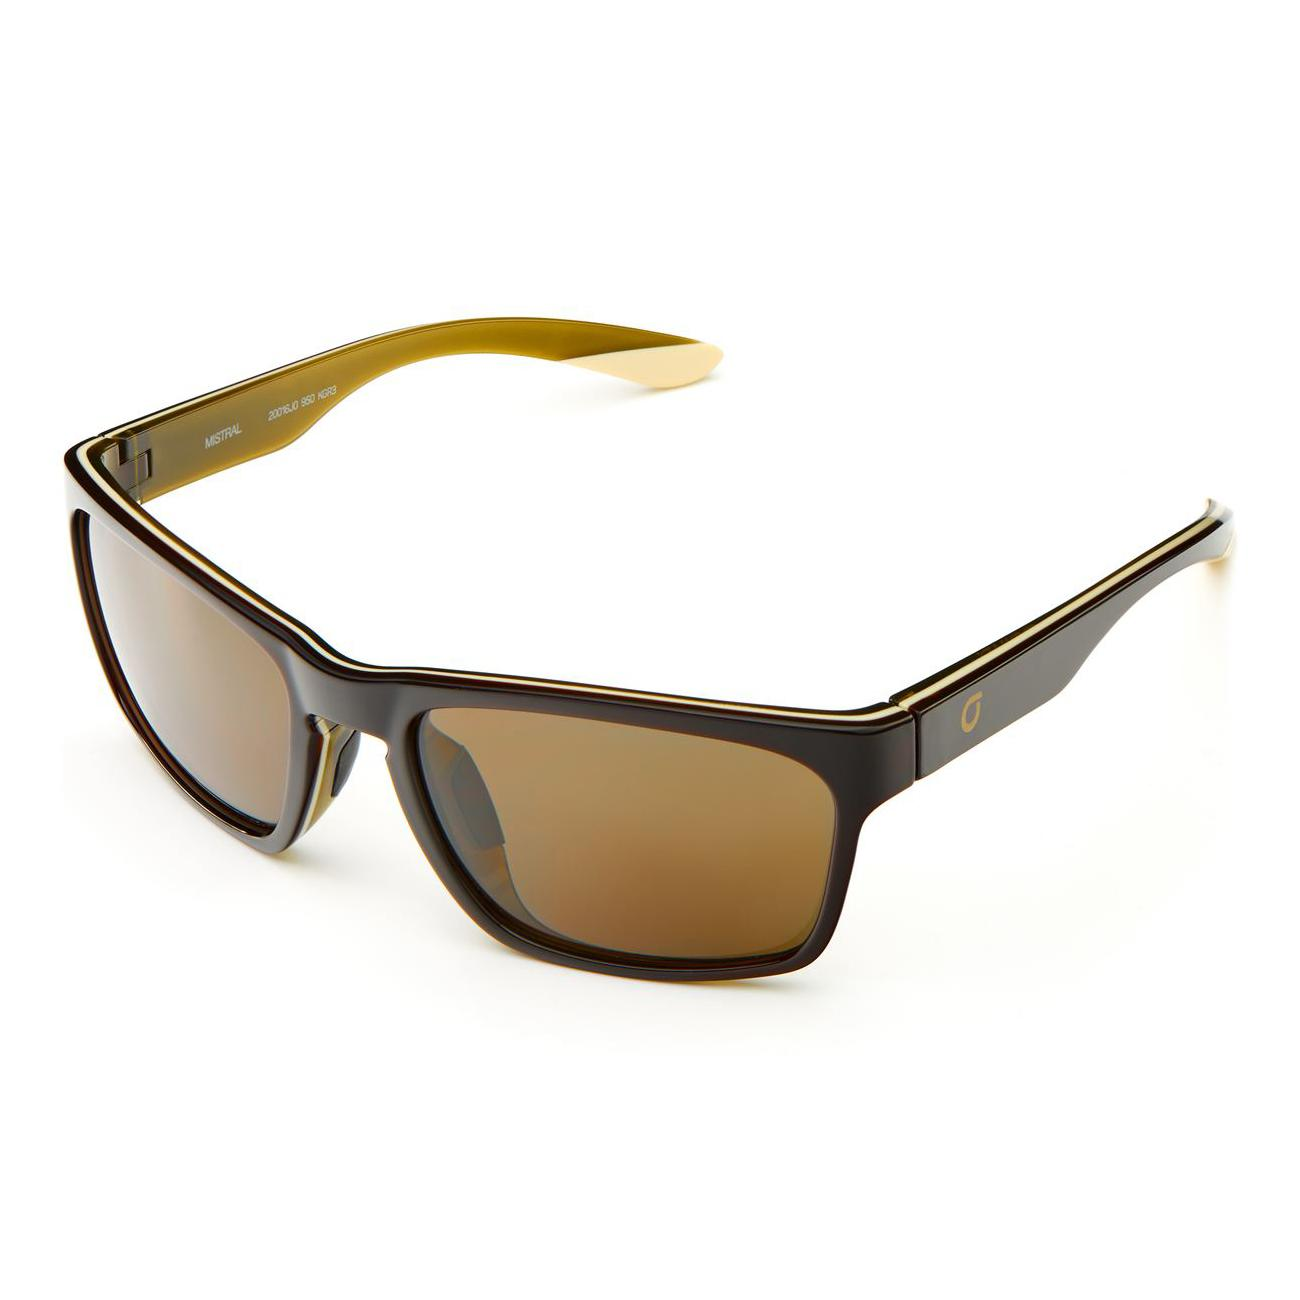 Briko Casual zonnebril unisex Bruin - Mistral Color HD Sunglasses Sh Brown Gr -Kgr3